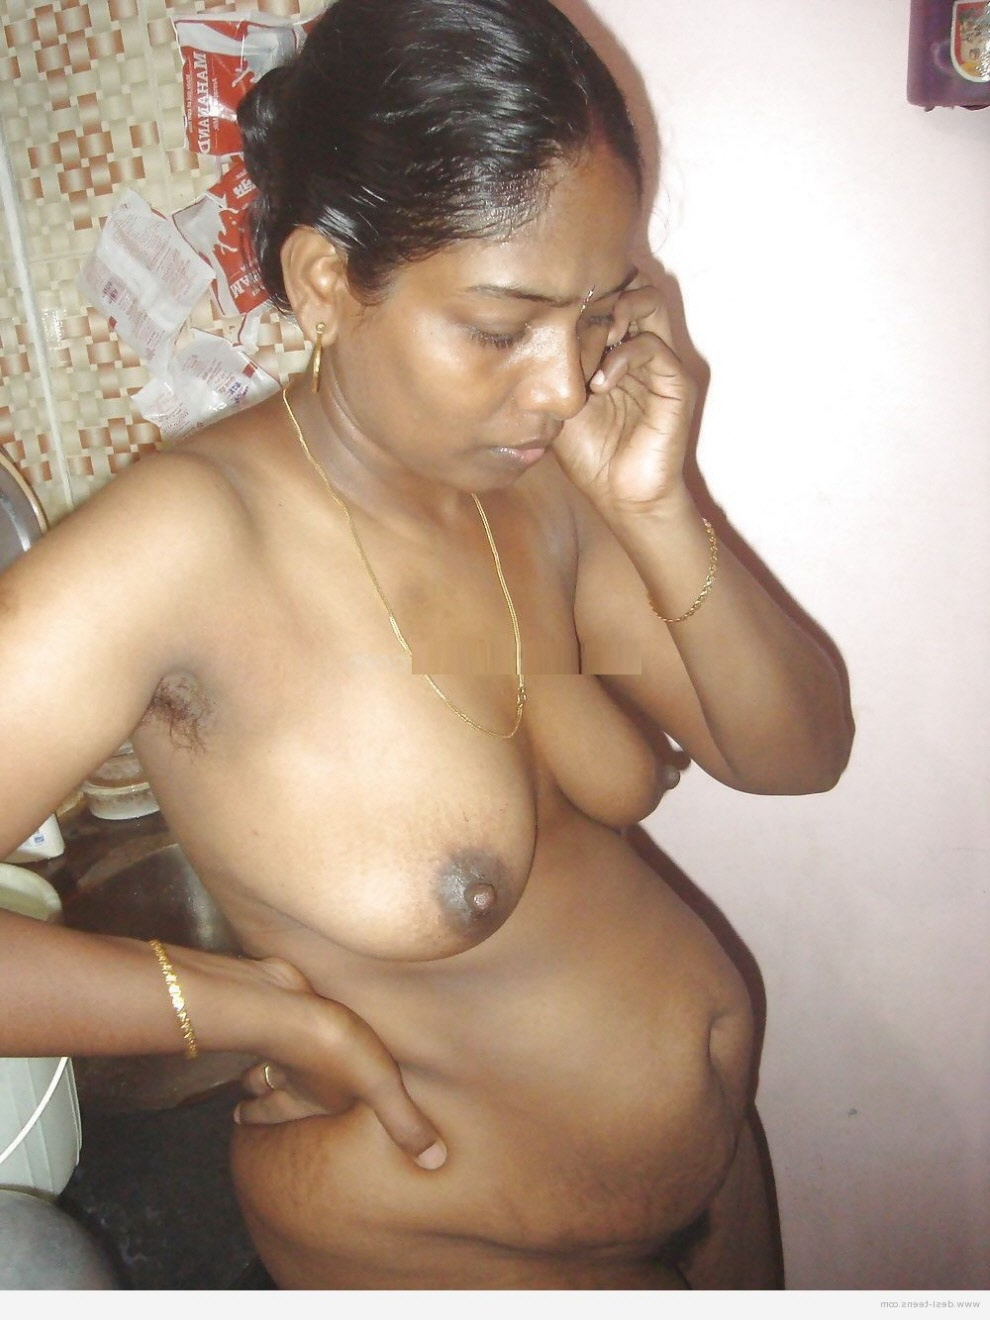 breastfeeding-tamil-aunty-nude-fuckin-in-nude-photos